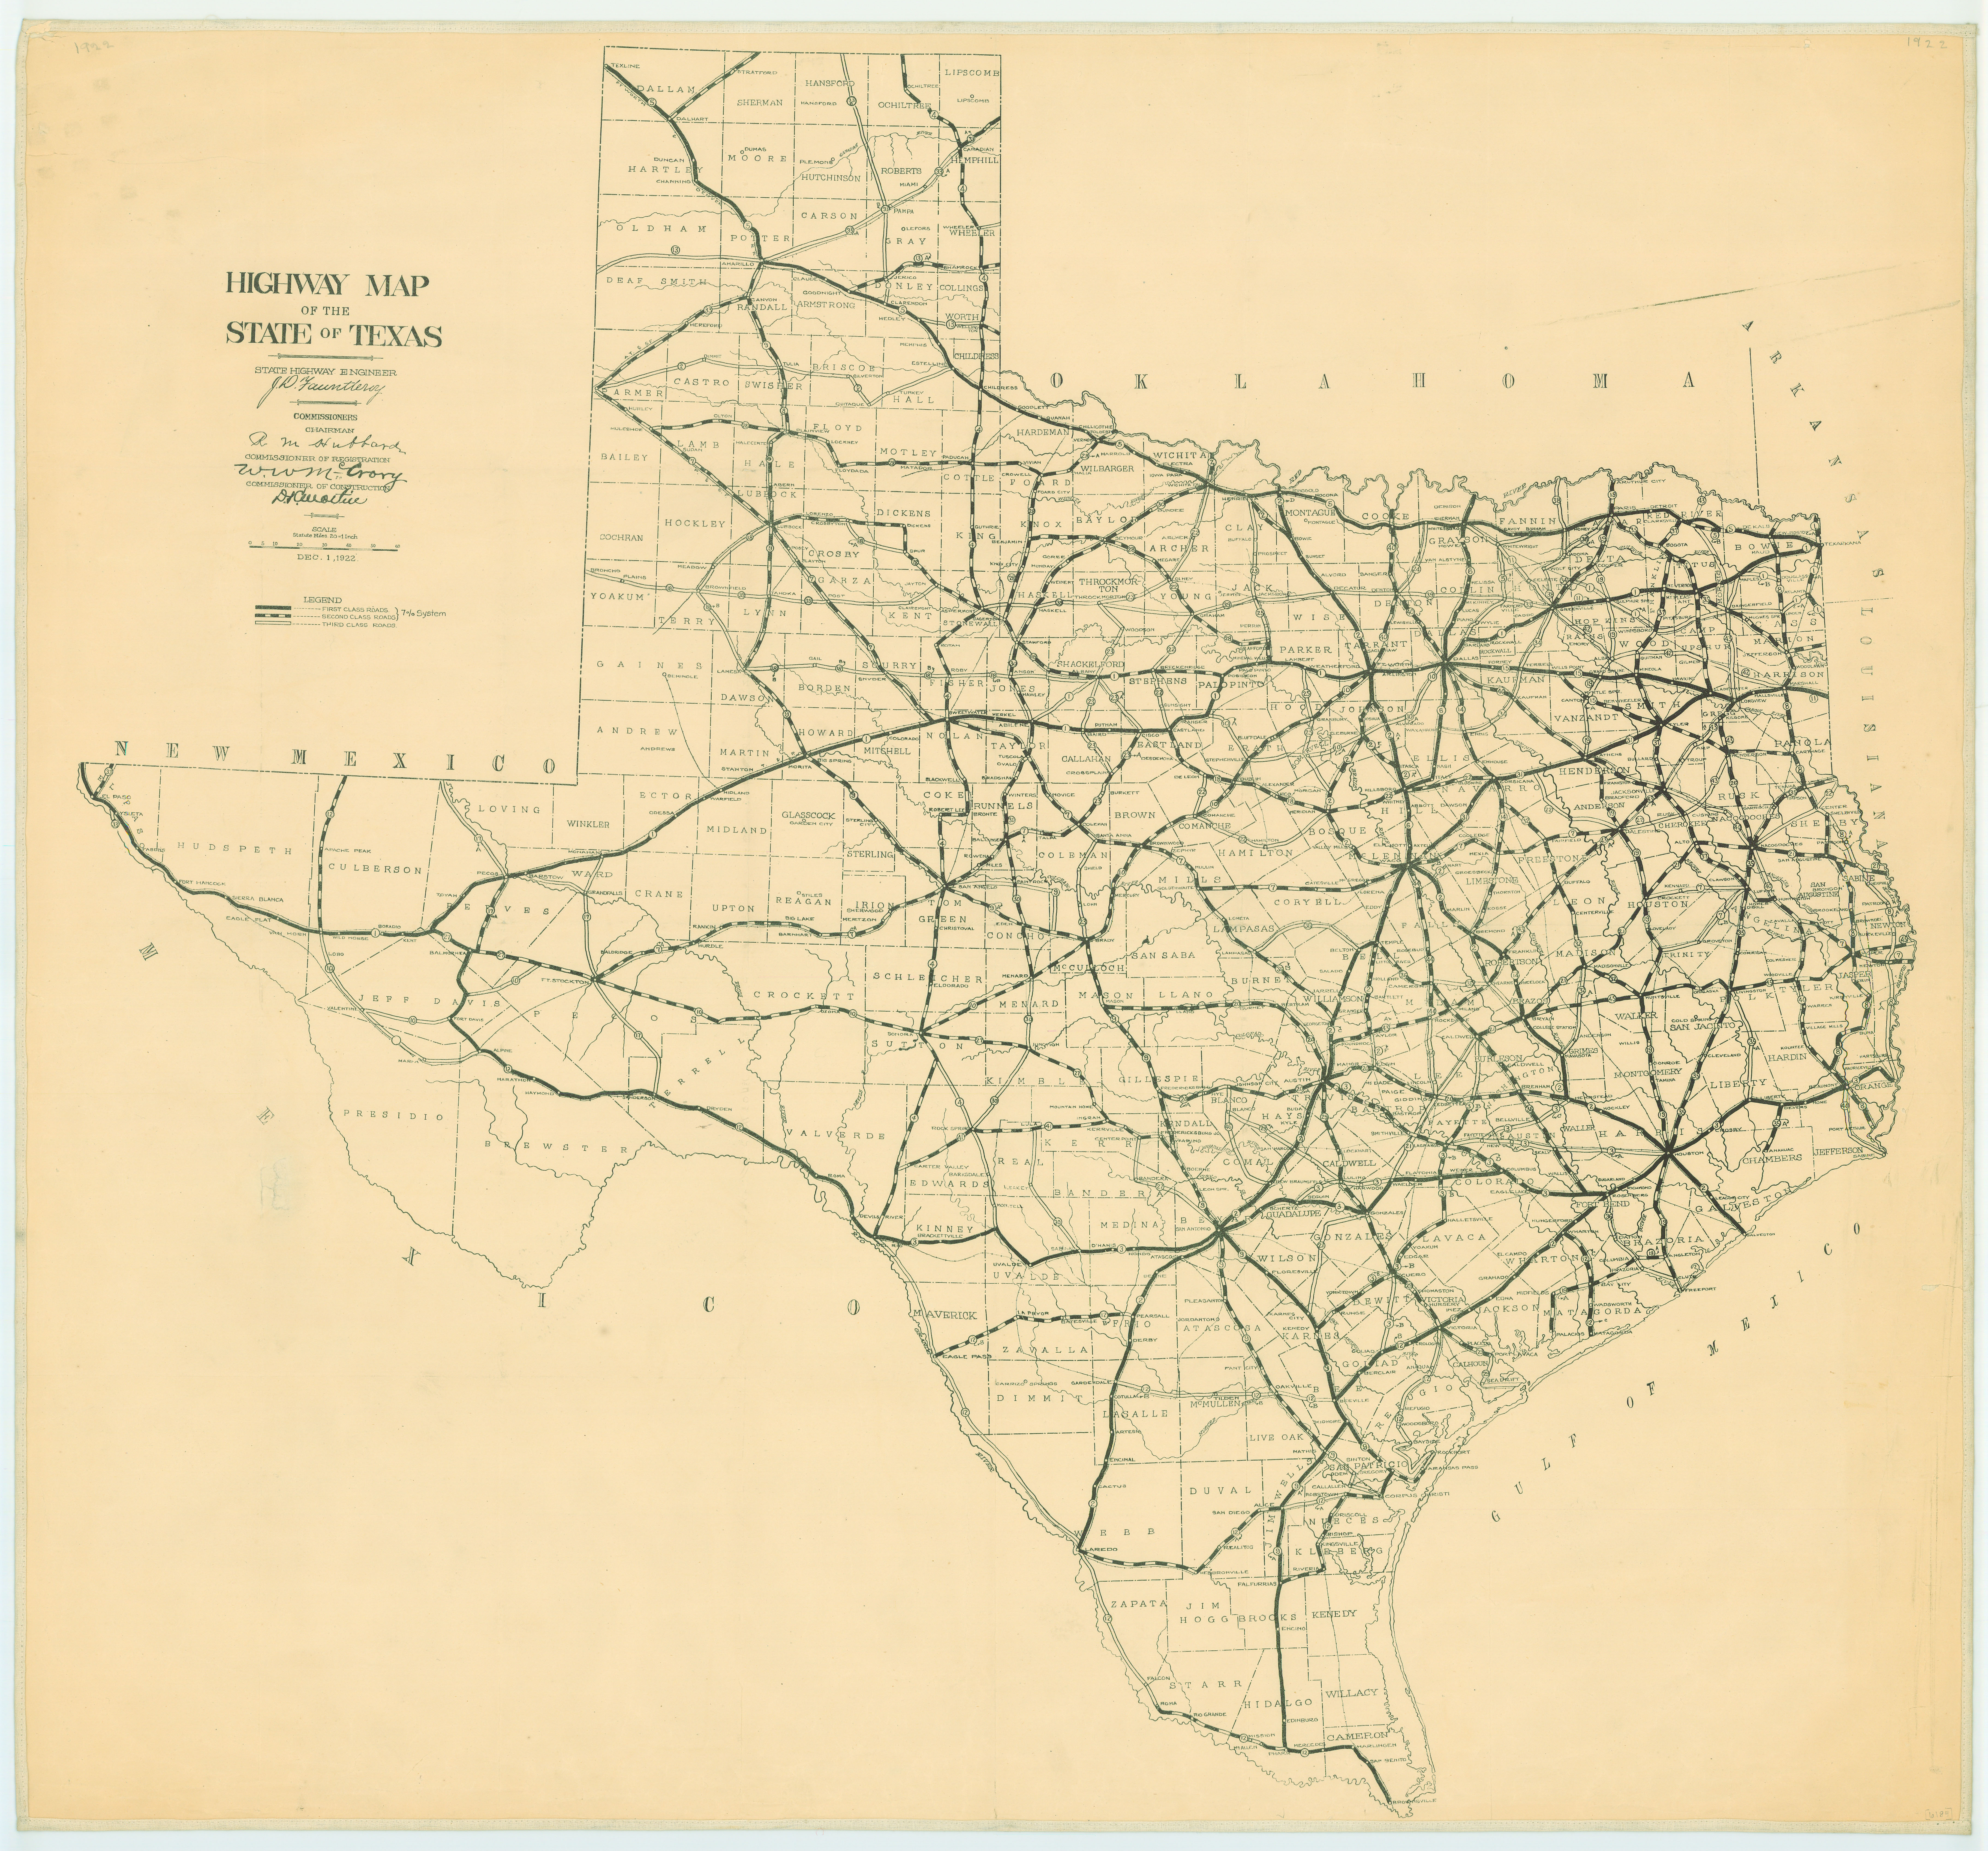 File:1922 Texas state highway map.jpg - Wikimedia Commons